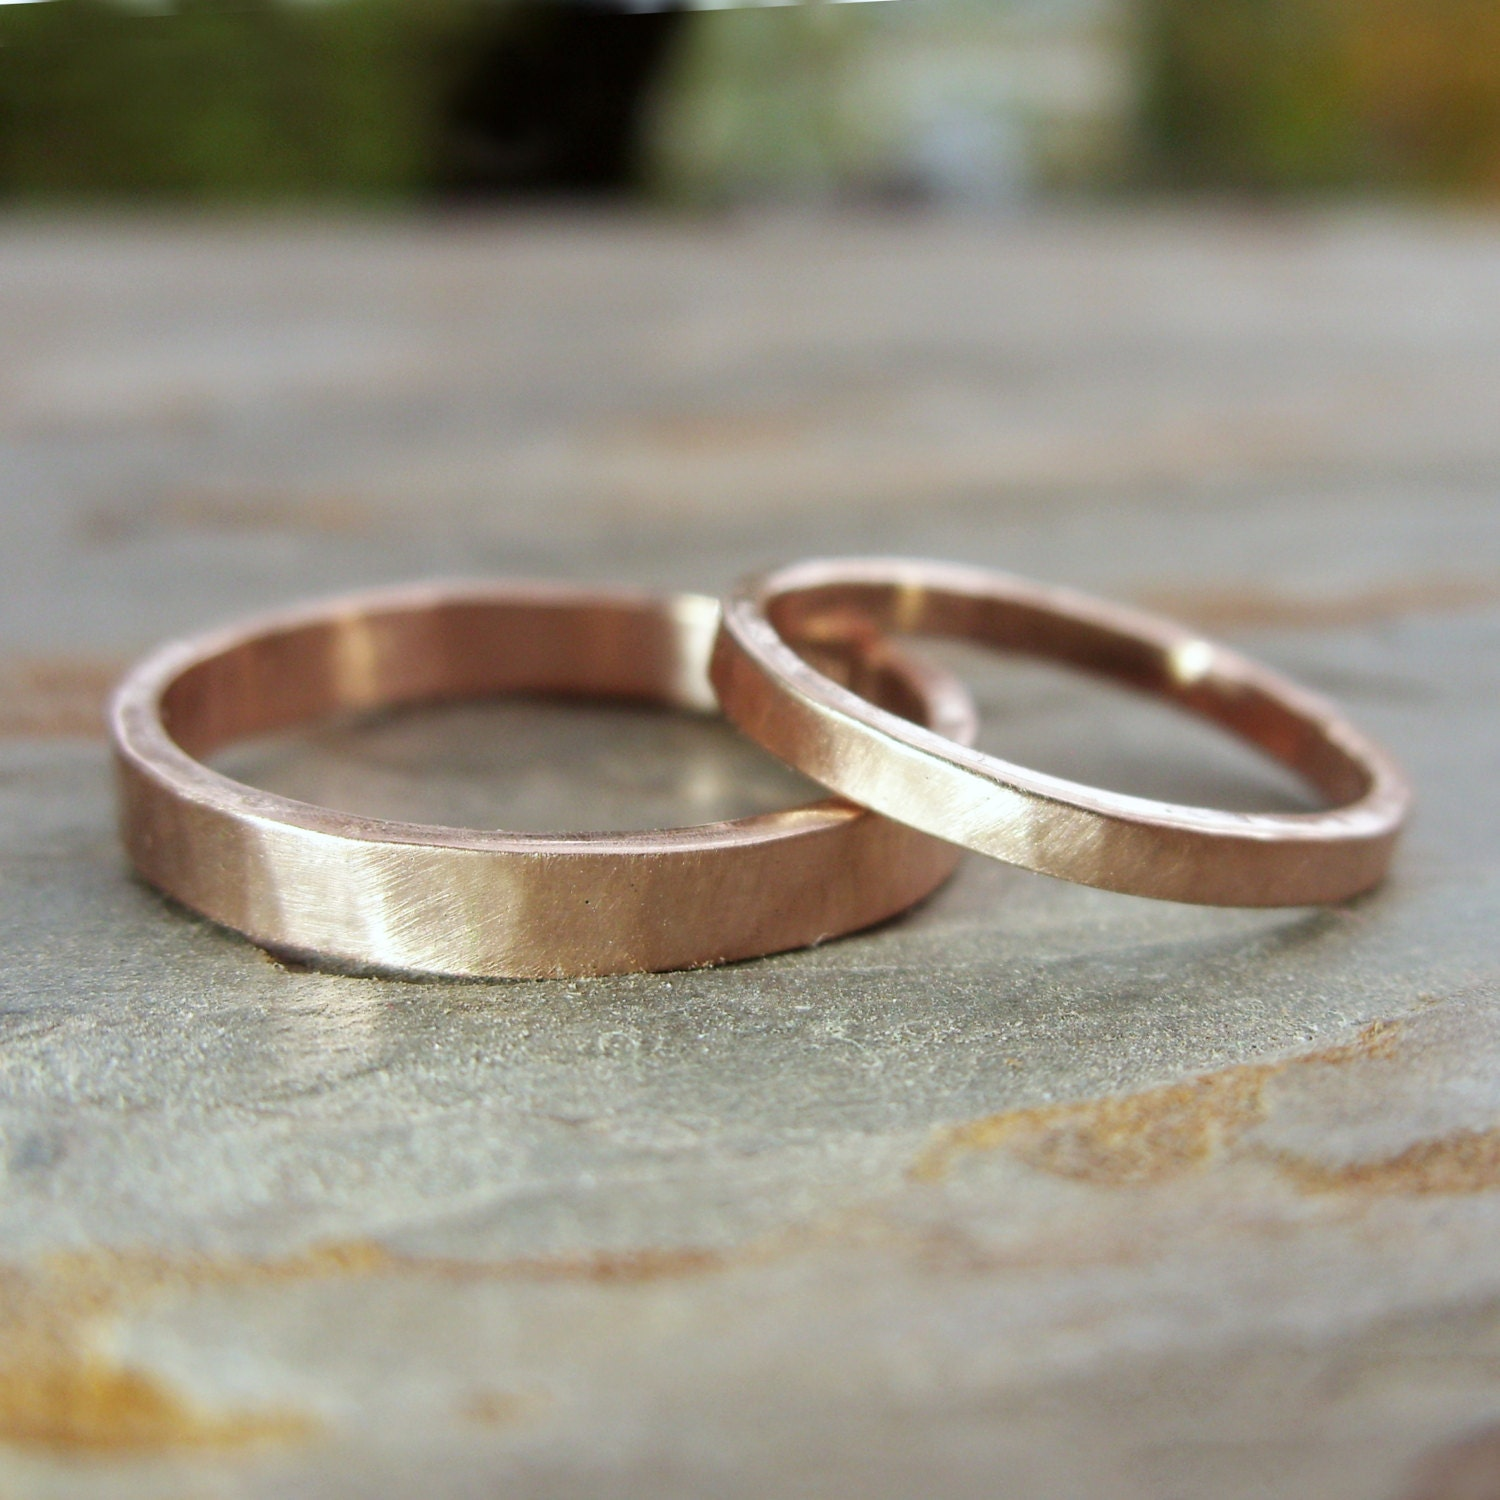 simple thin 14k rose gold wedding band matching gold wedding bands Hammered Matching Wedding Band Set in Solid 14k Yellow or Rose Gold Flat Bands in 2mm and 3mm Choose Polished or Matte Finish